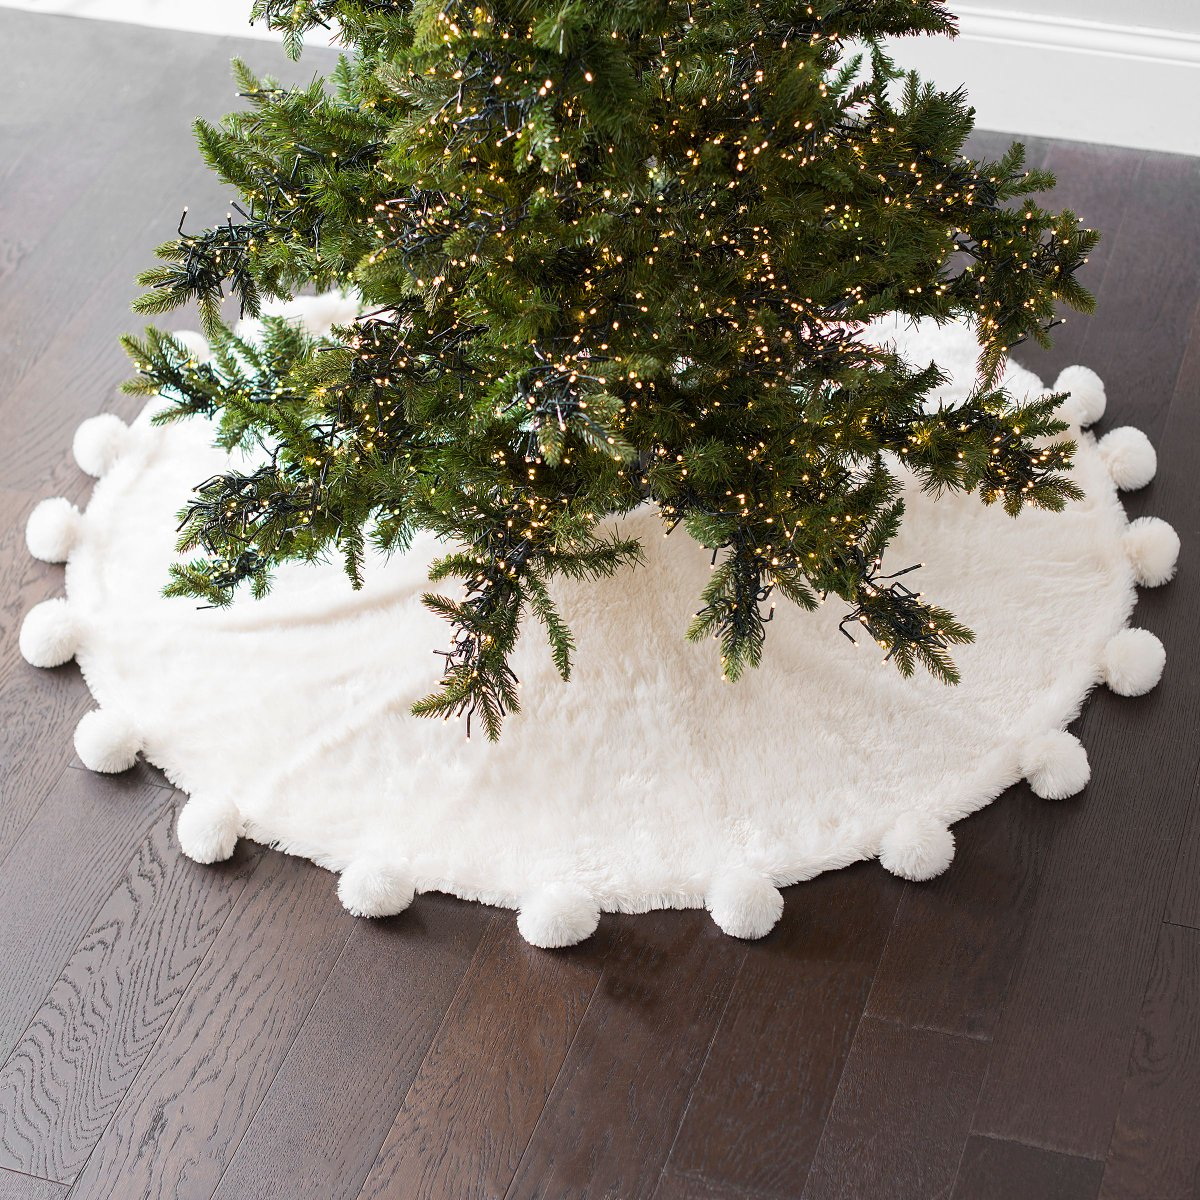 Kirkland S On Twitter Add Some Festive Sparkle To Your Tree Today Only Tree Skirts Are 25 With The Christmas Daily Deals Https T Co Acqsbqv3vq Christmasdecor Treeskirts Christmastrees Kirklandsfinds Bringhappinesshome